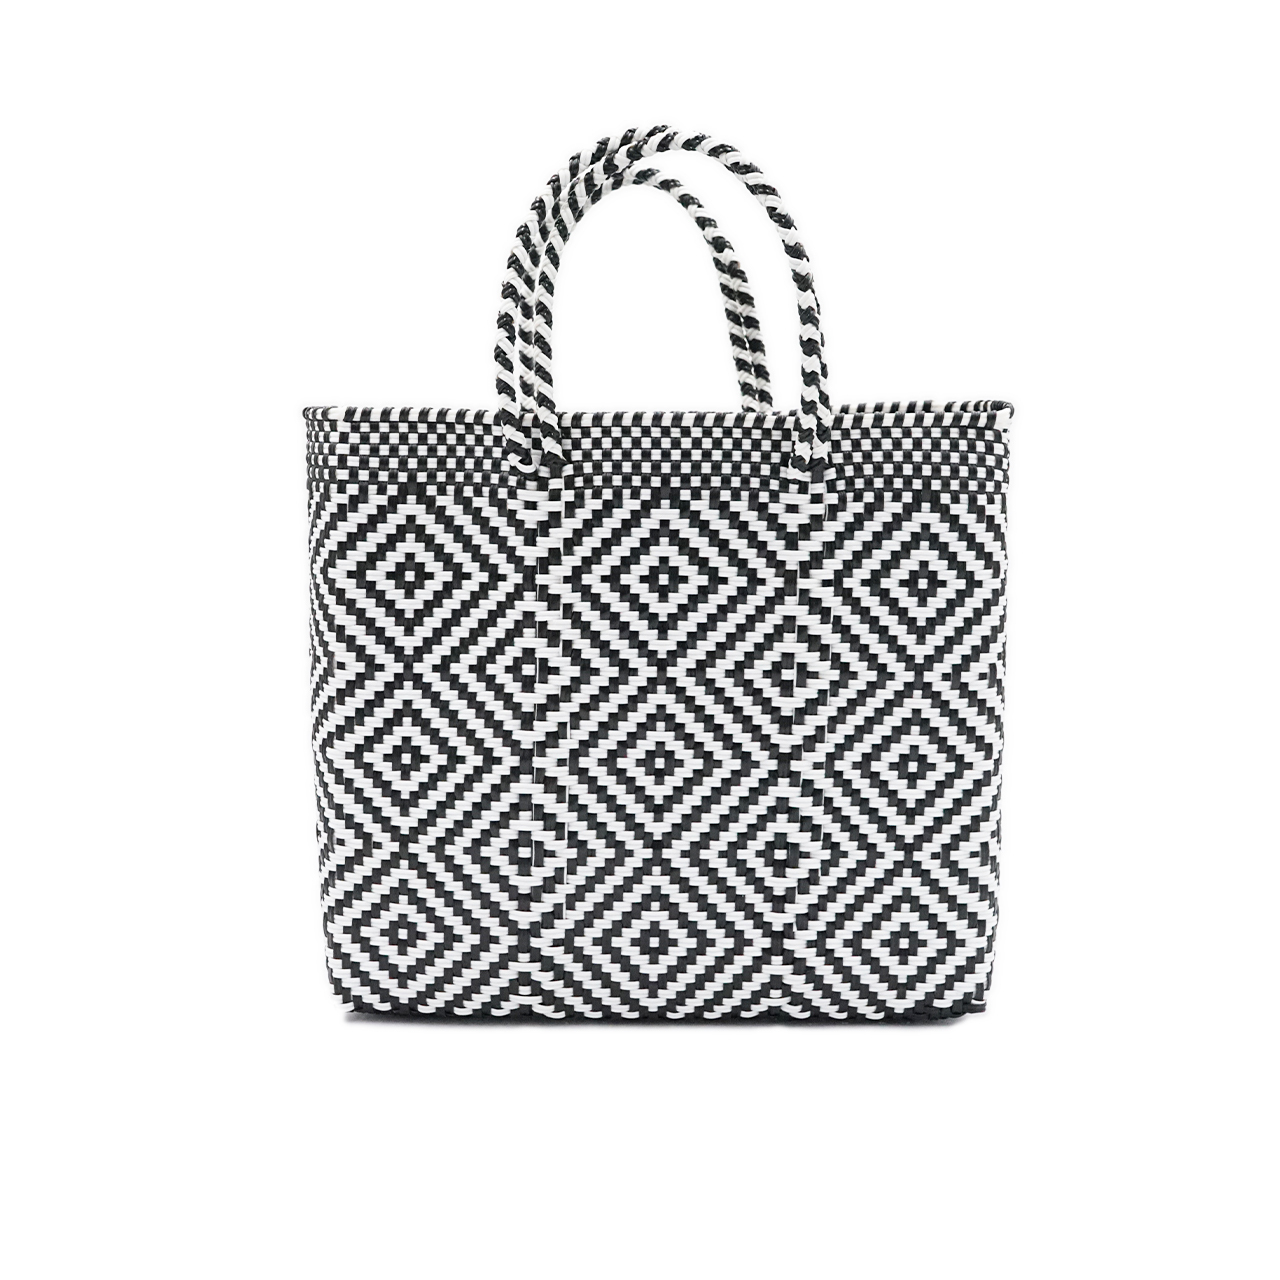 MERCADO BAG MULTI DIAMOND- Black x White(S)